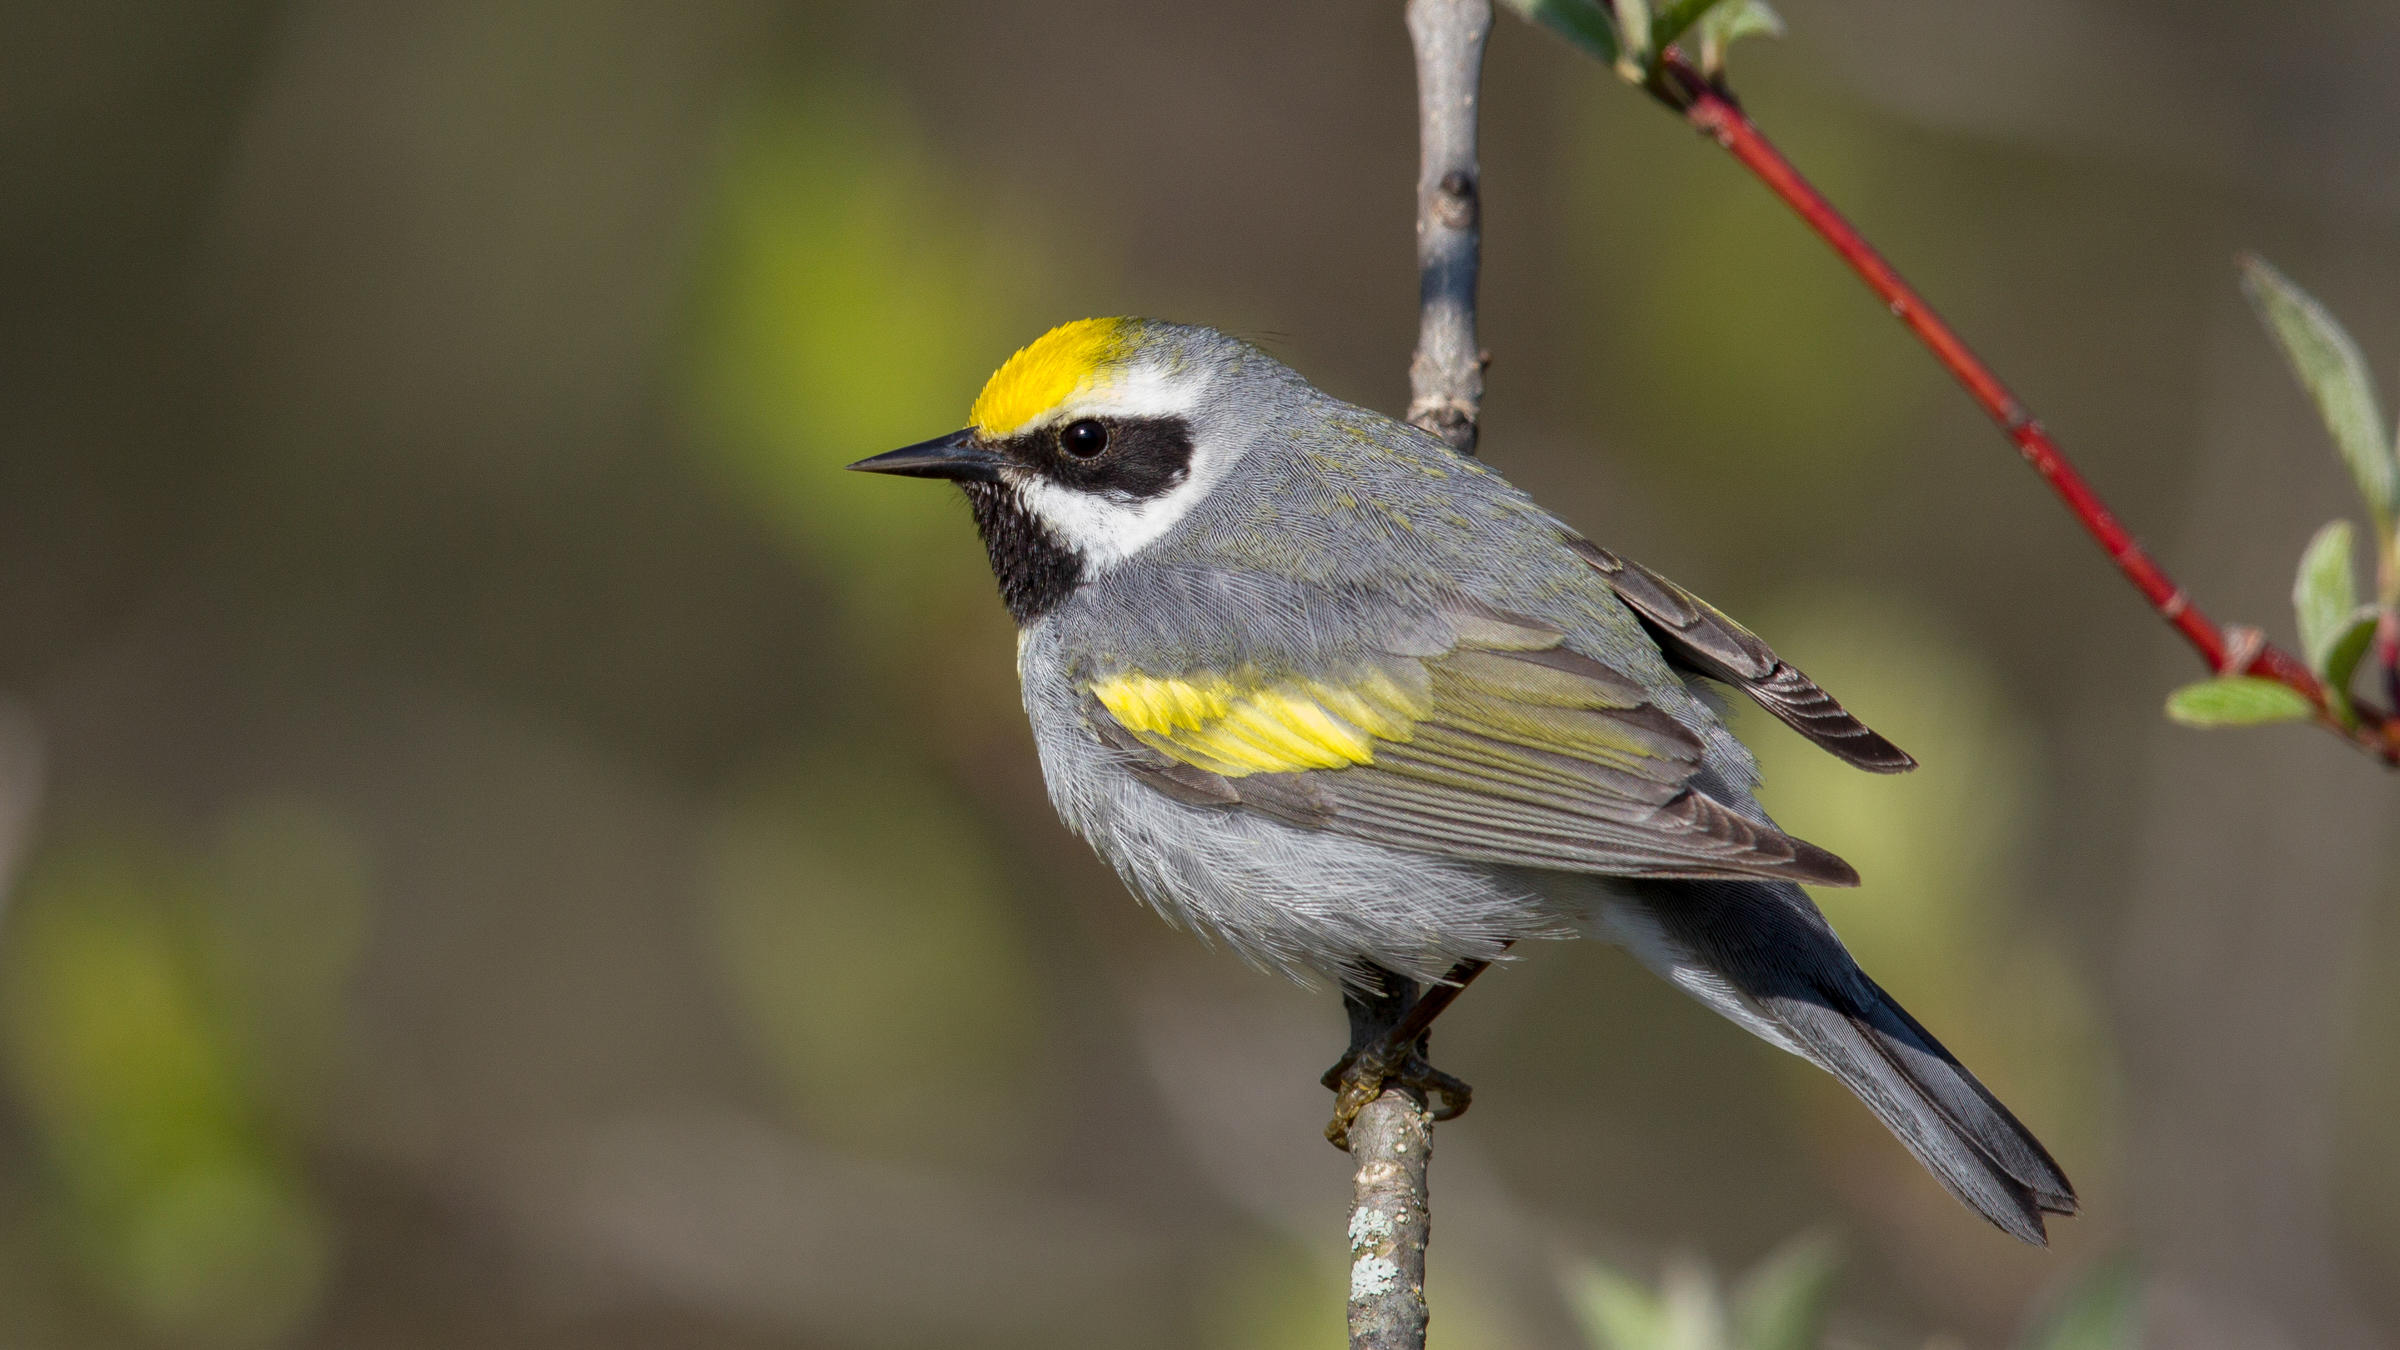 web_golden-winged-warbler-_apa_2016-a1_2794_1_golden-winged-warbler_arni_stinnissen_kk